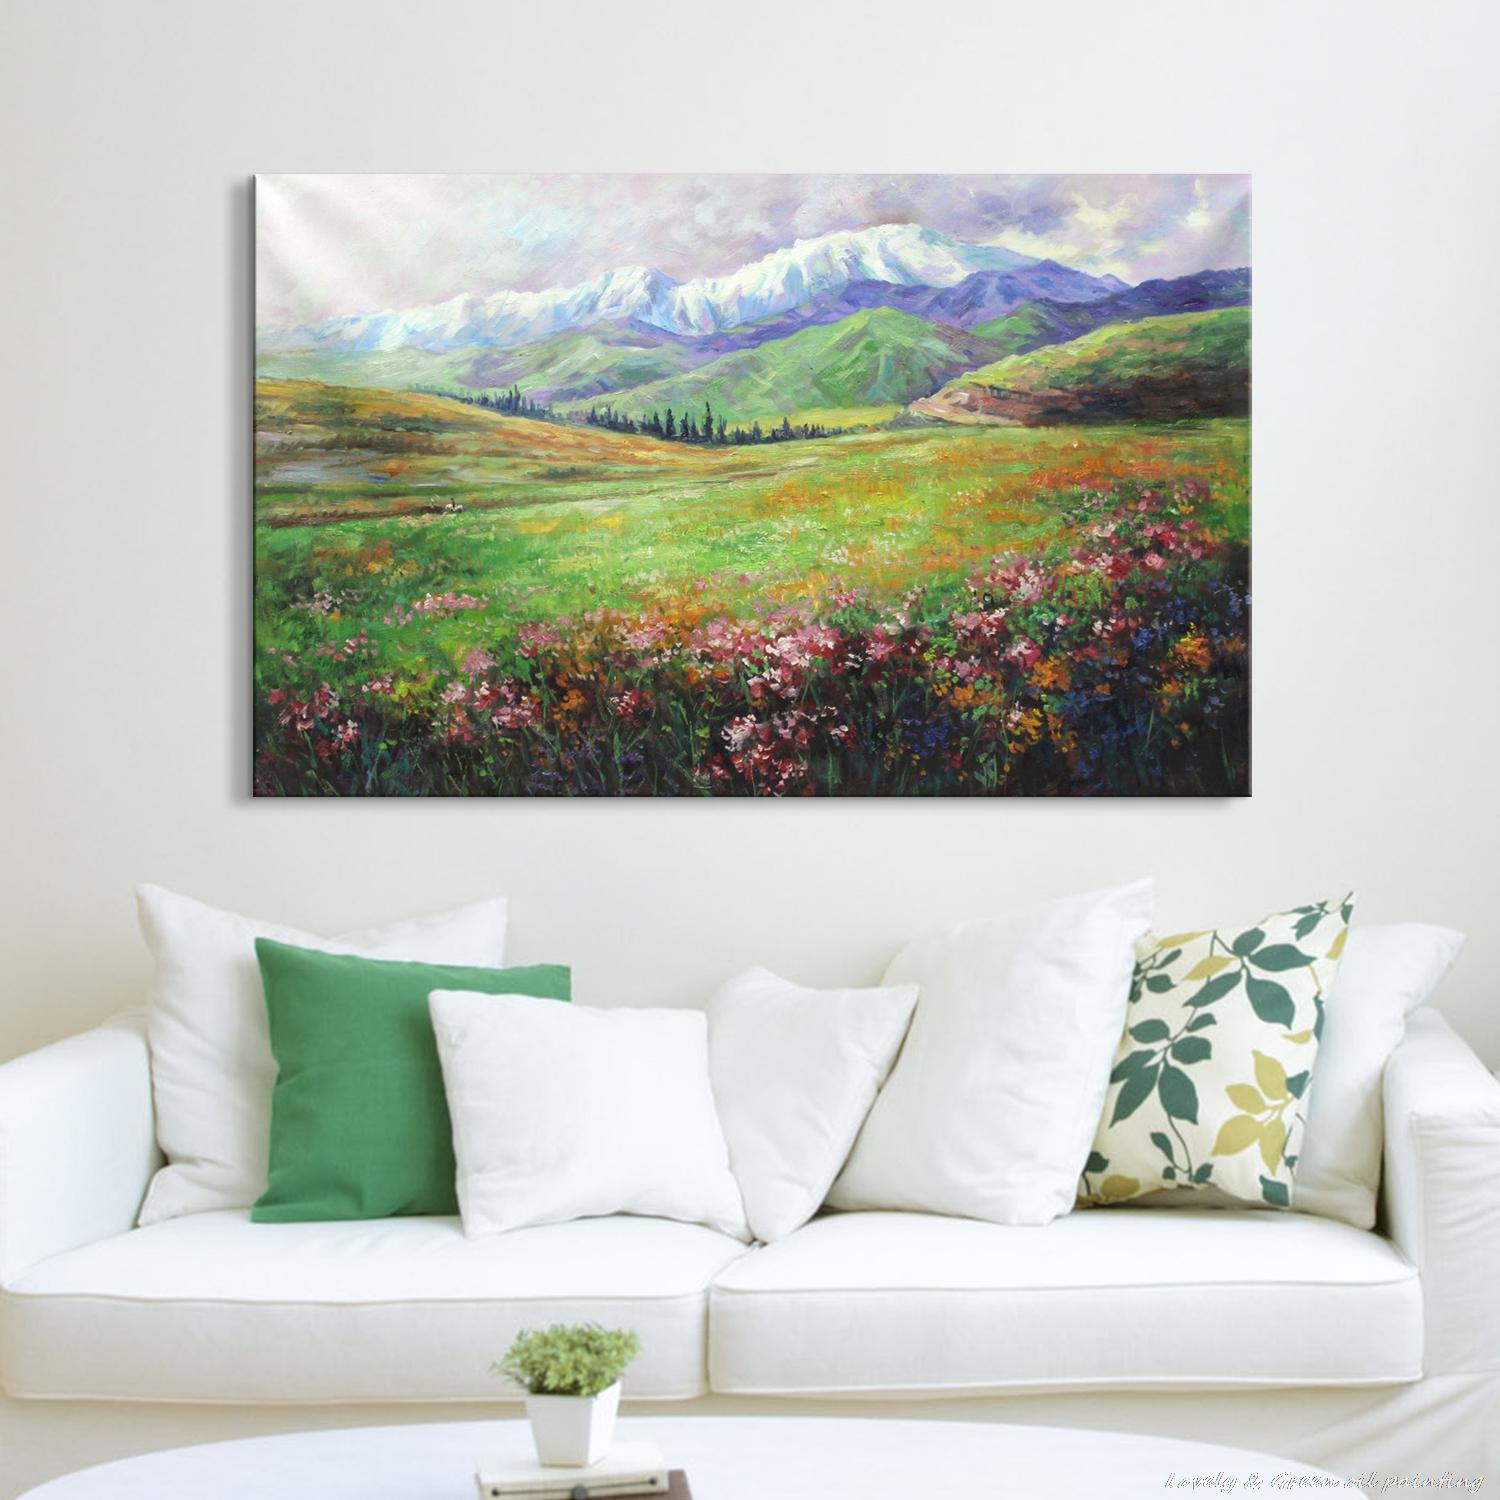 Popular spring landscape paintings buy cheap spring landscape paintings lots from china spring - A beautiful painting on wall ...